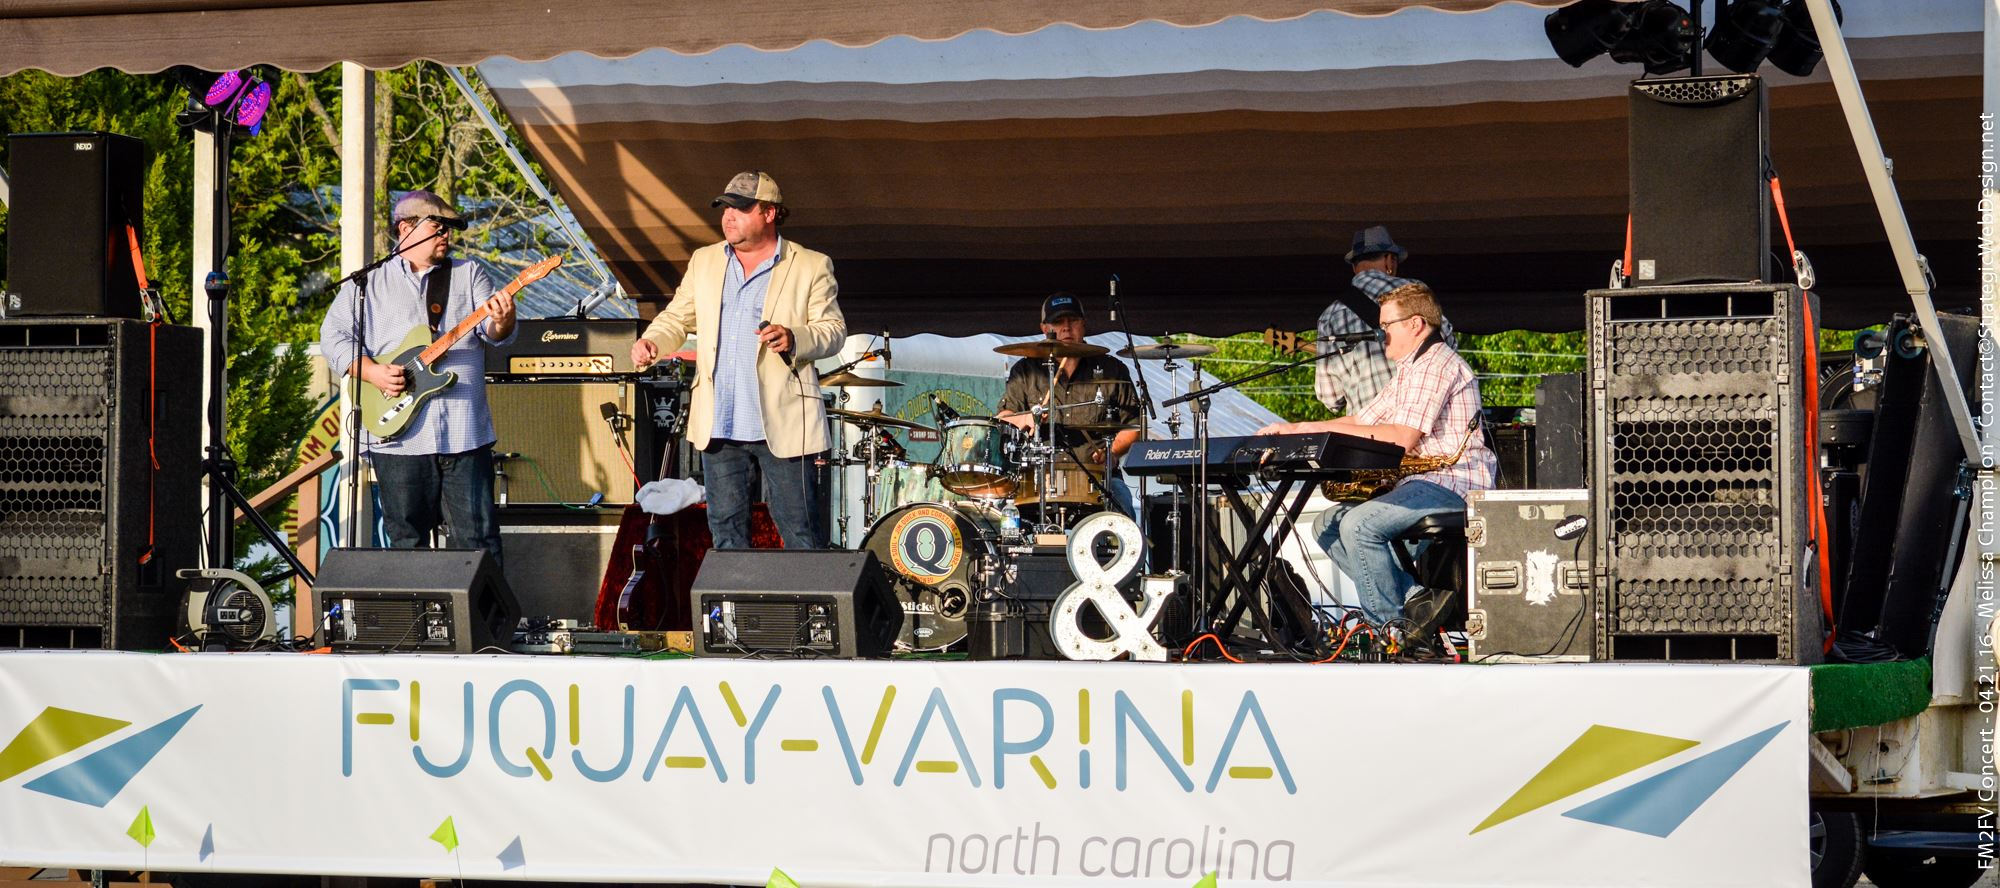 Follow Me 2 Fuquay-Varina Concert Performance